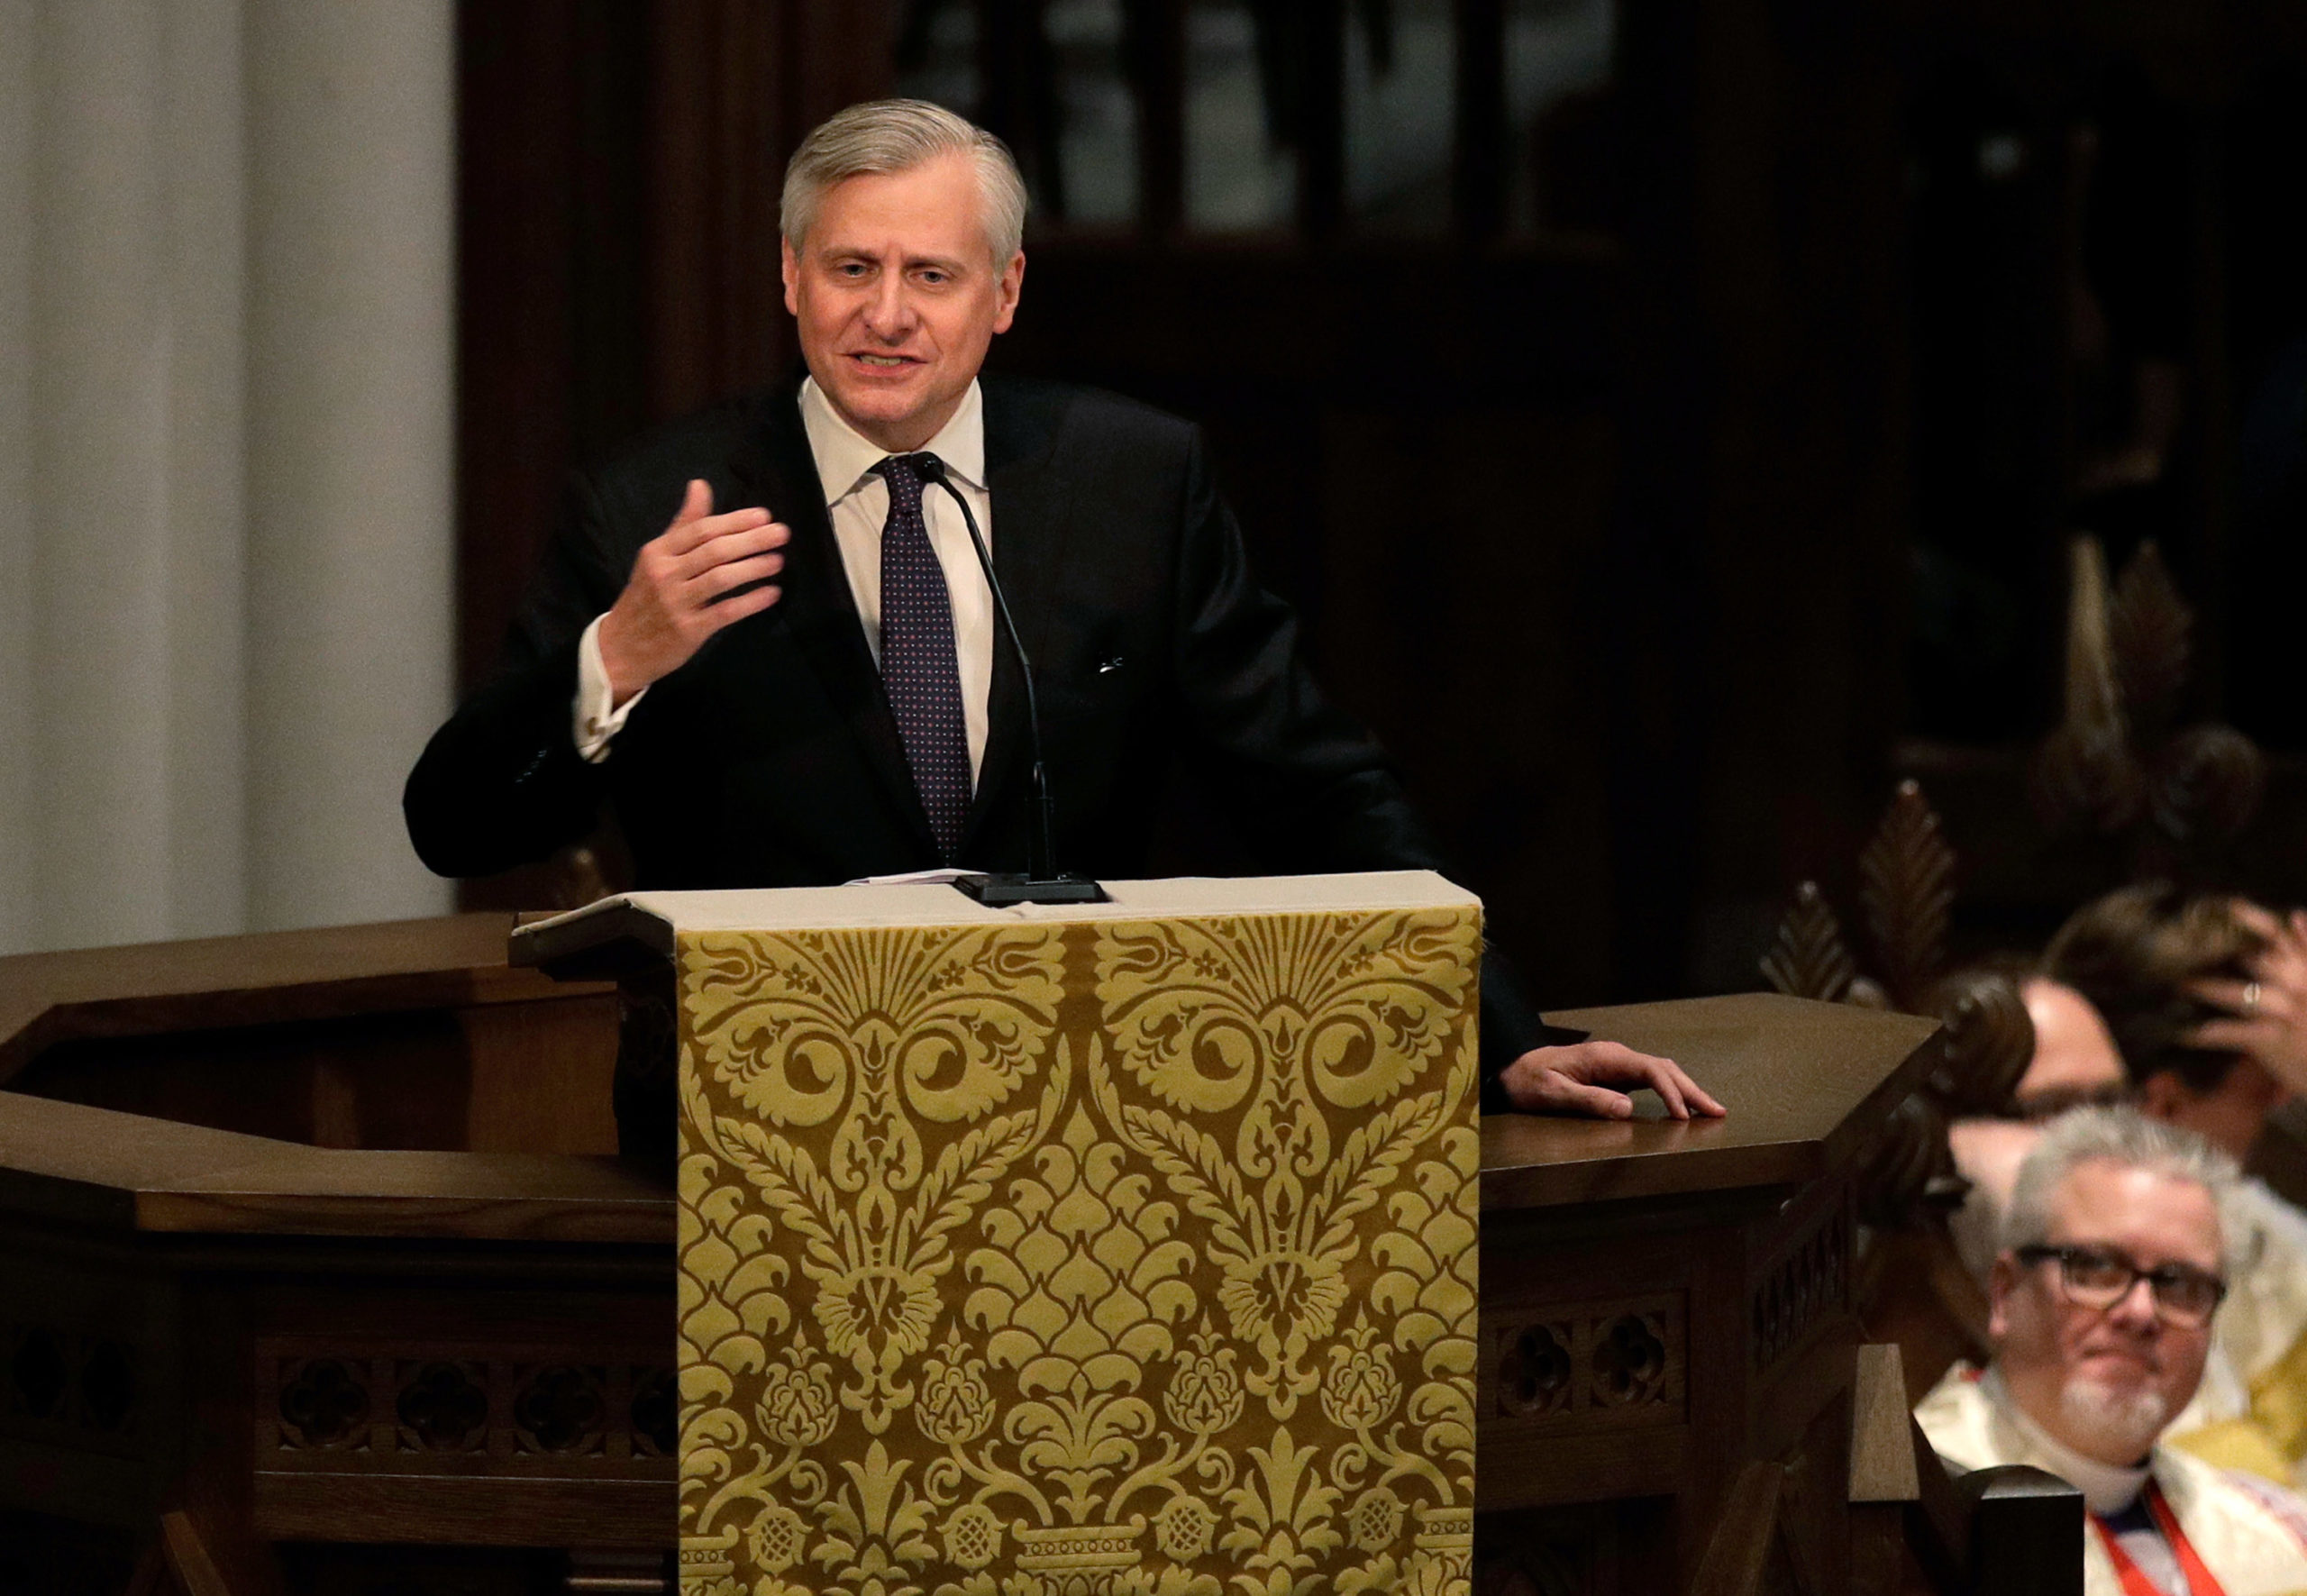 Jon Meacham speaks during a funeral service for former first lady Barbara Bush at St. Martin's Episcopal Church, April 21, 2018 in Houston, Texas. (David J. Phillip-Pool/Getty Images)